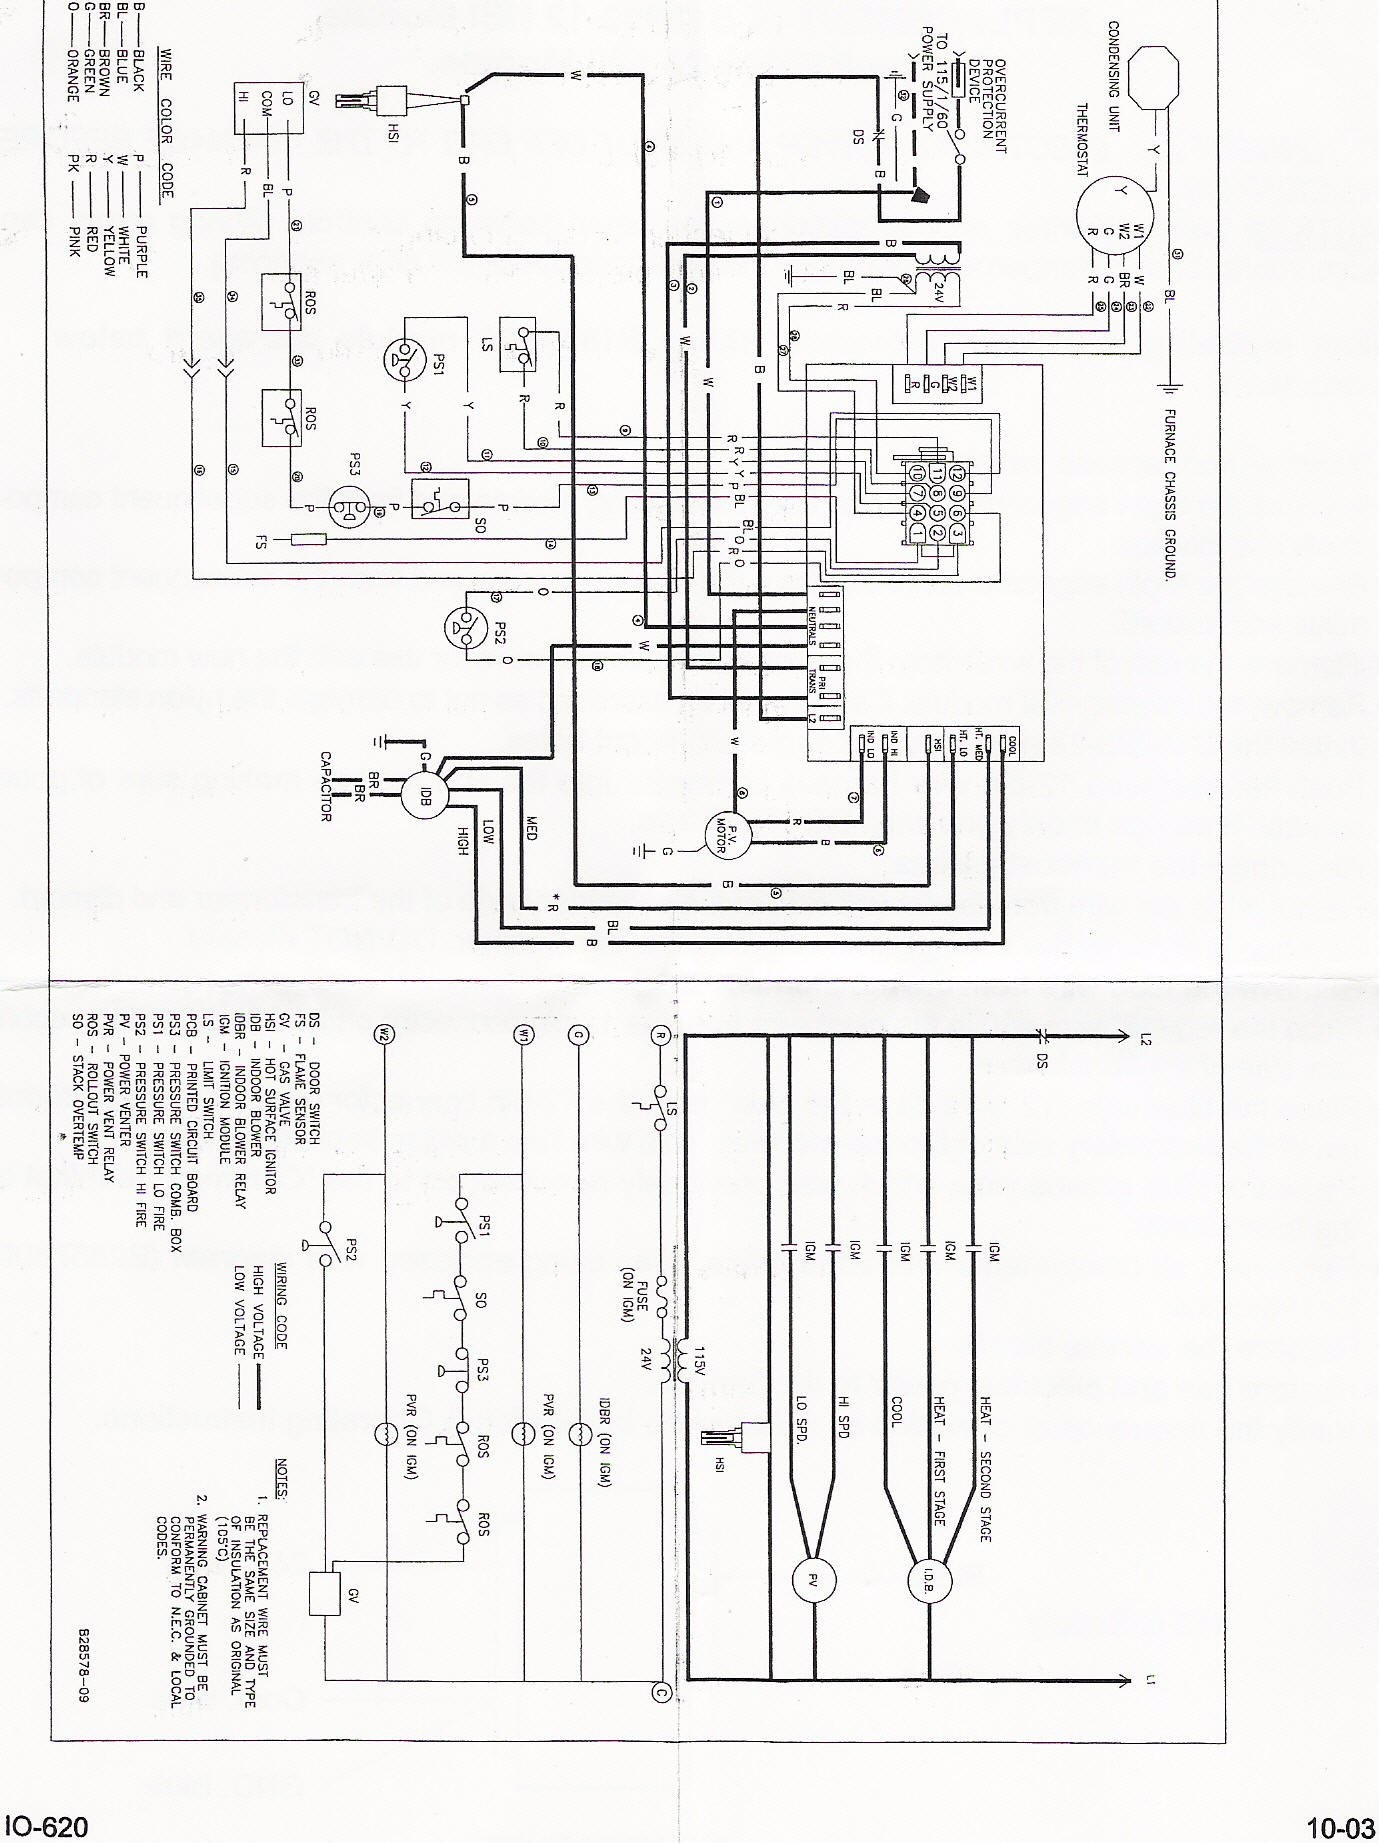 York Heat Pump Control Wiring Diagram - Wiring Diagrams IMG York Heat Pump Schematic Diagram on